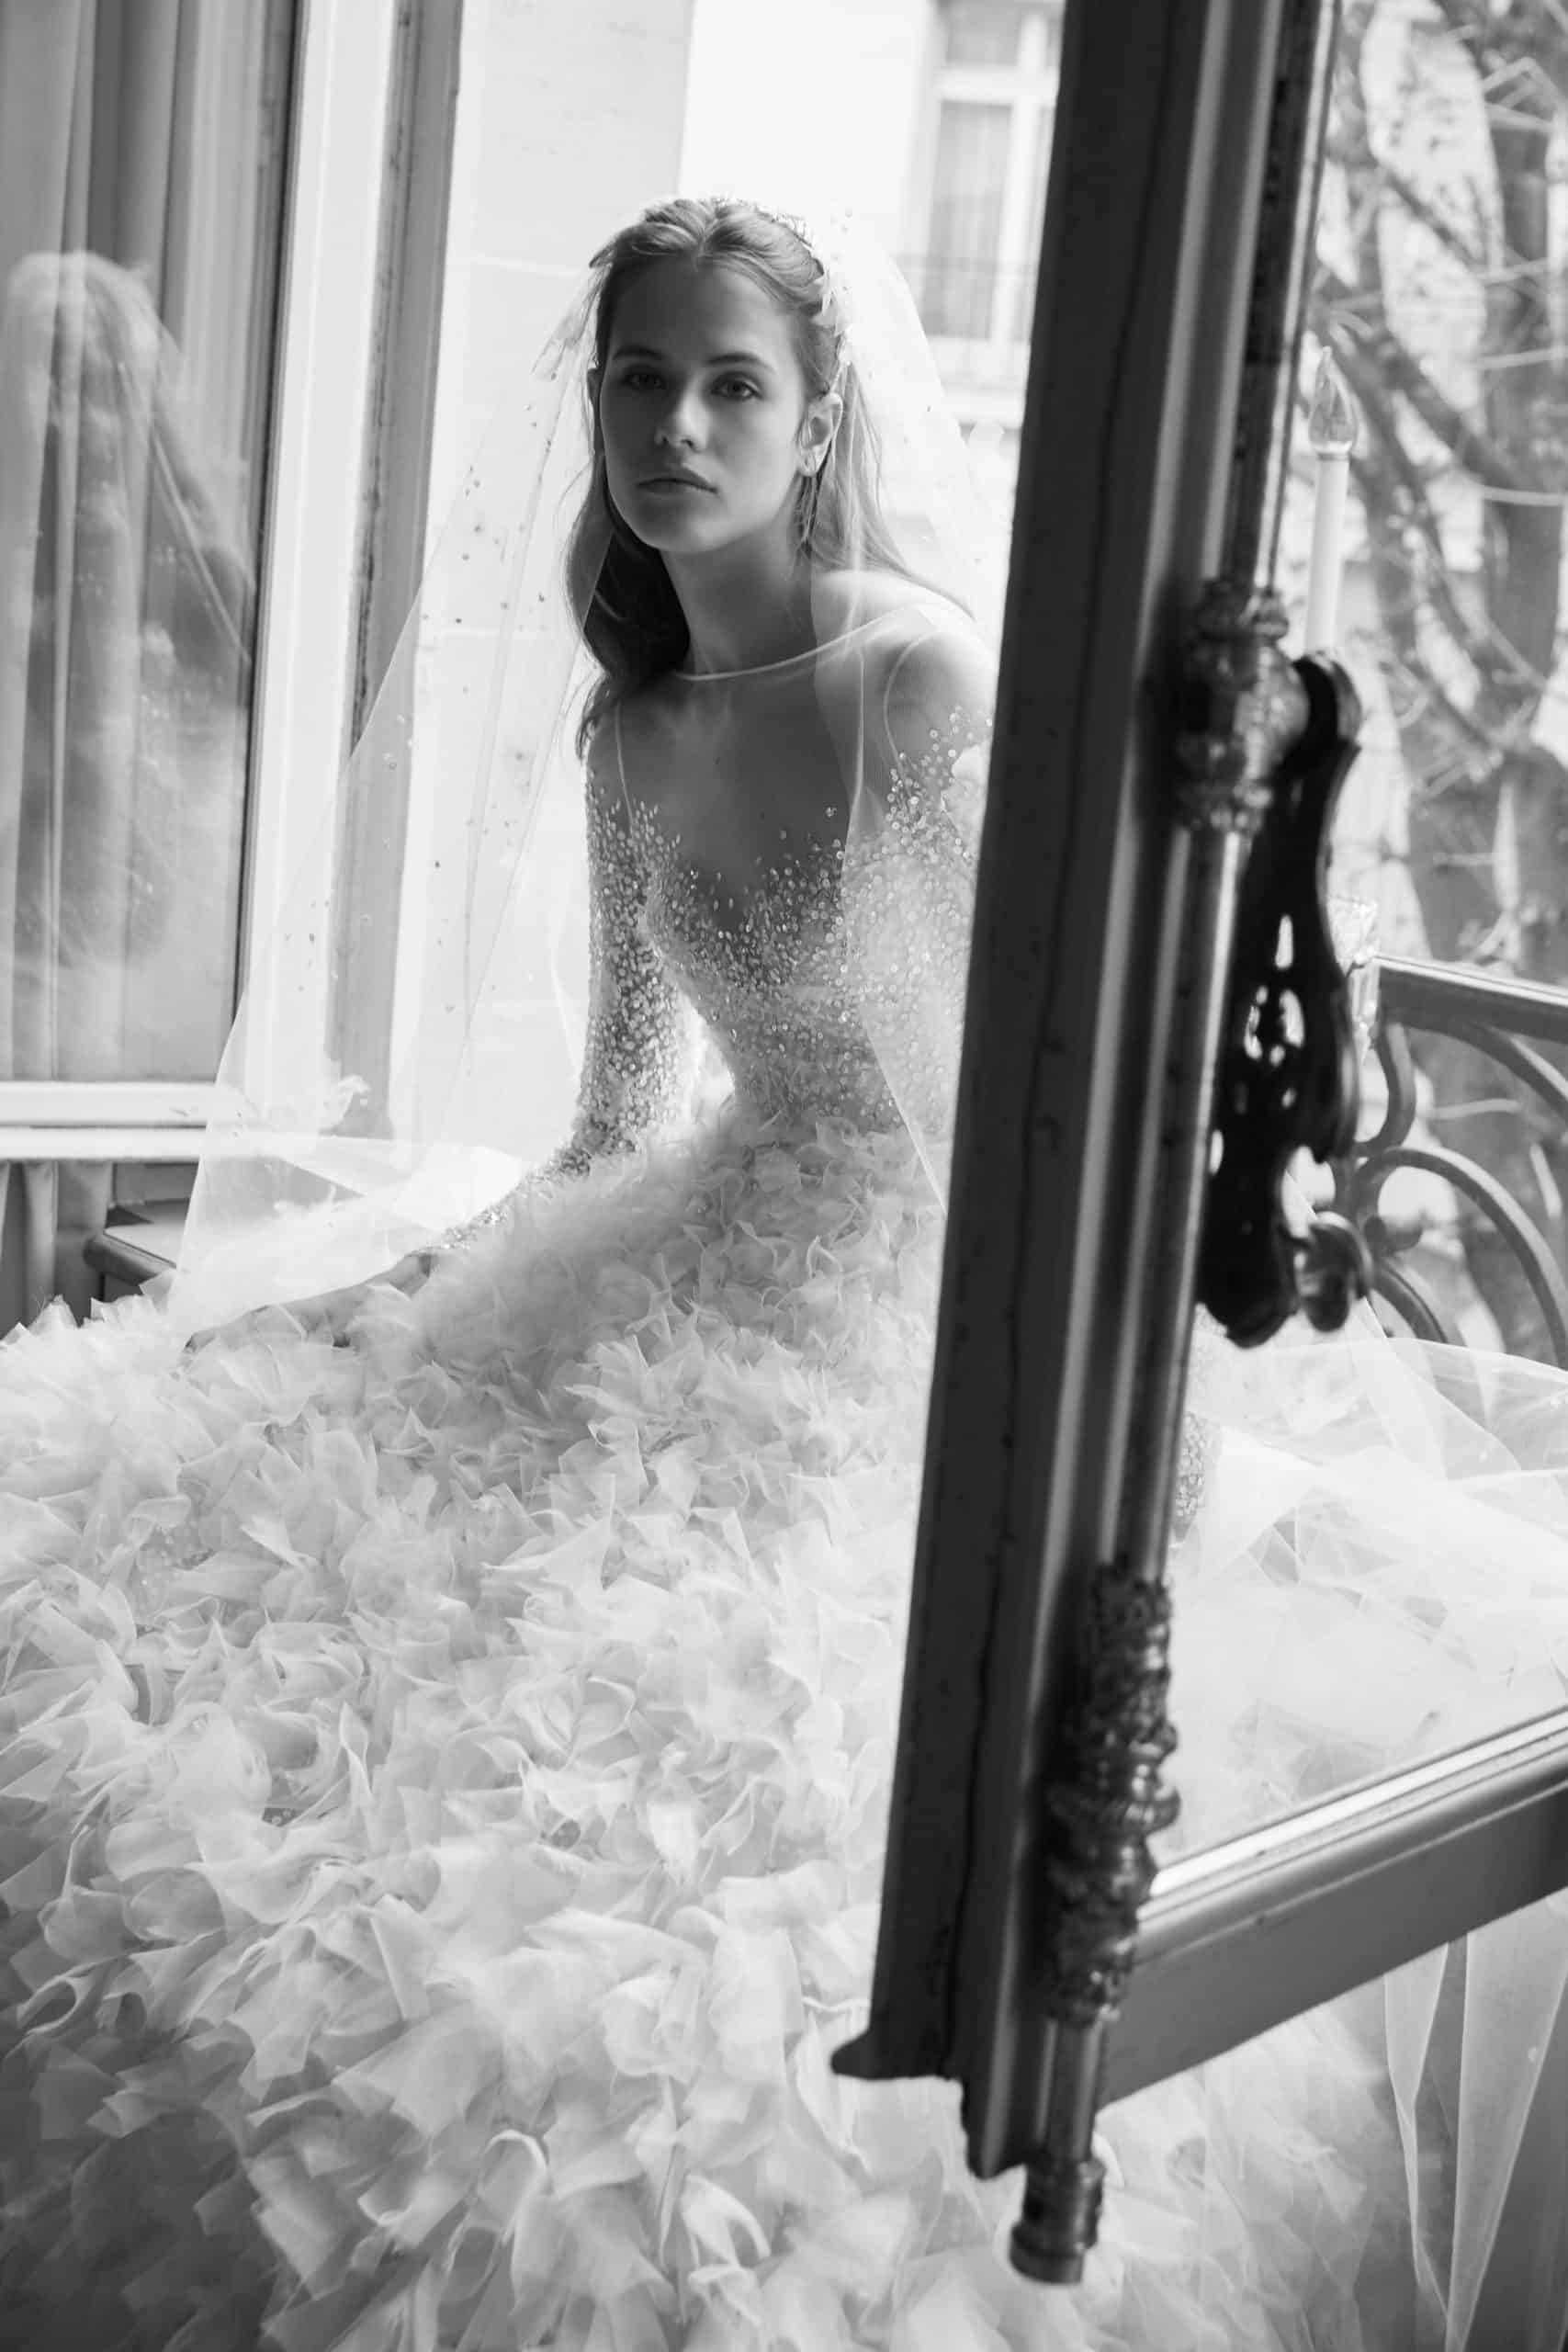 princes wedding dress with a see-through pearls top by Elie Saab